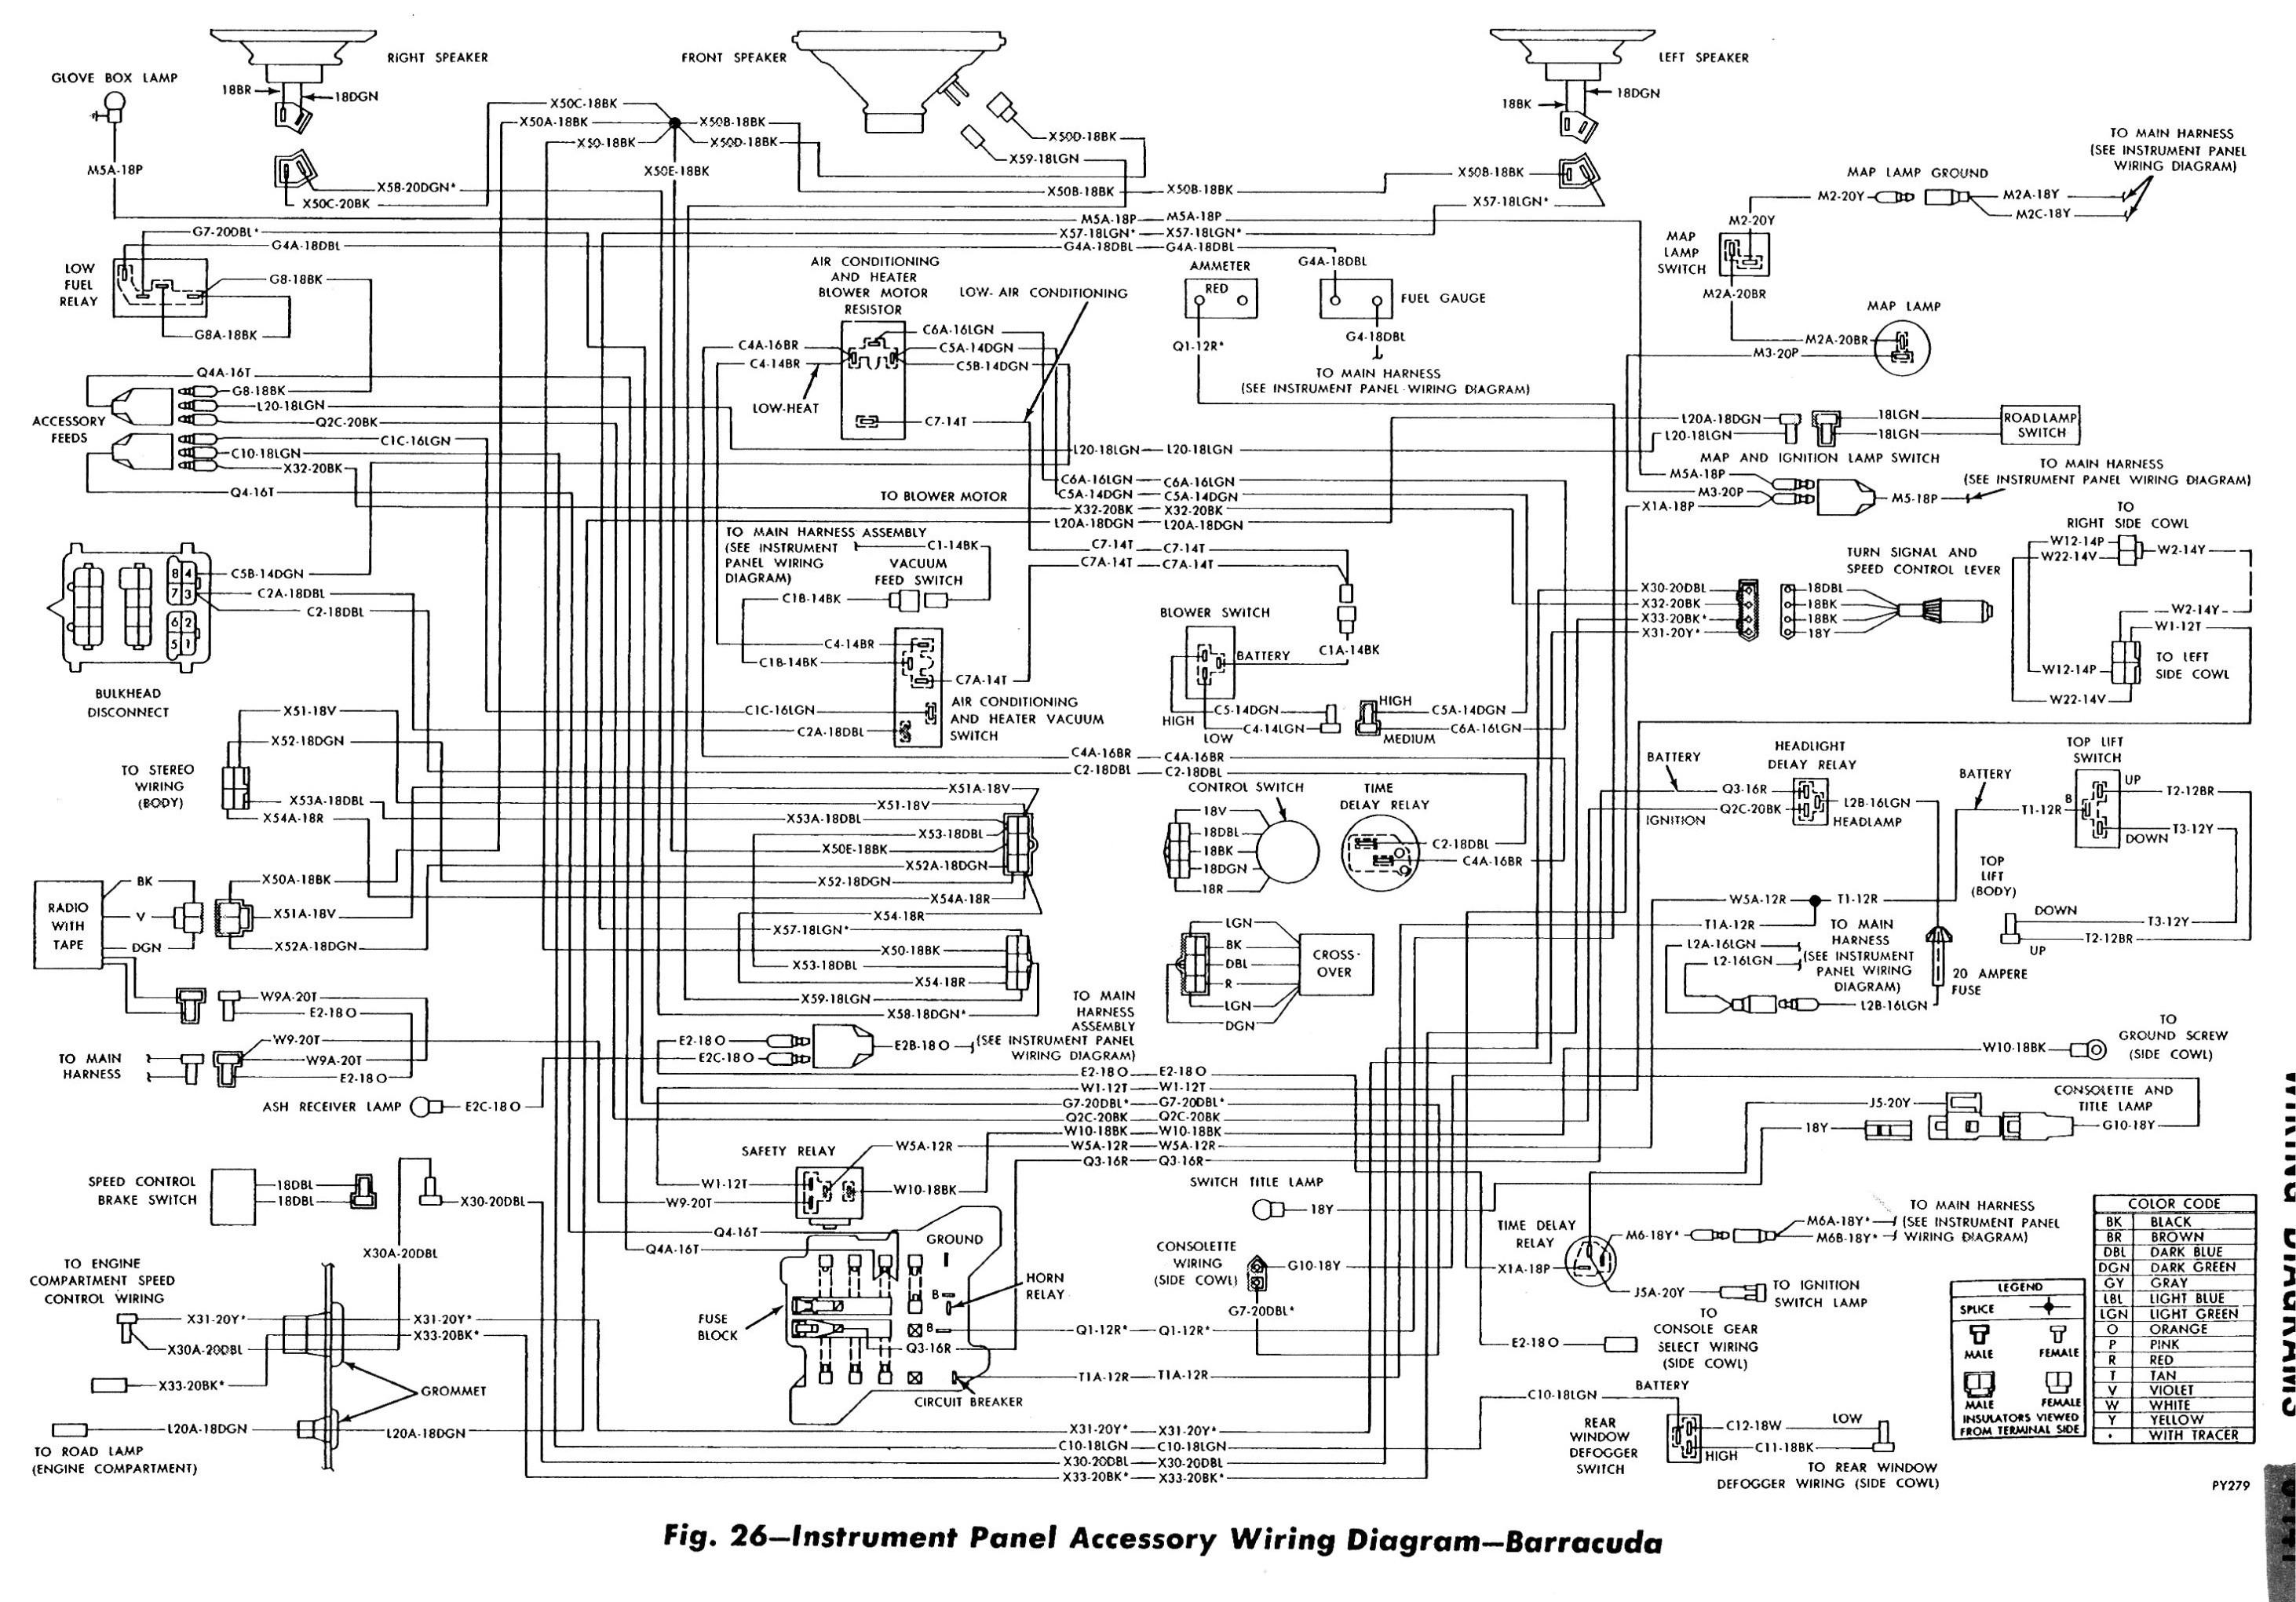 1972 cuda wiper diagram wiring schematic